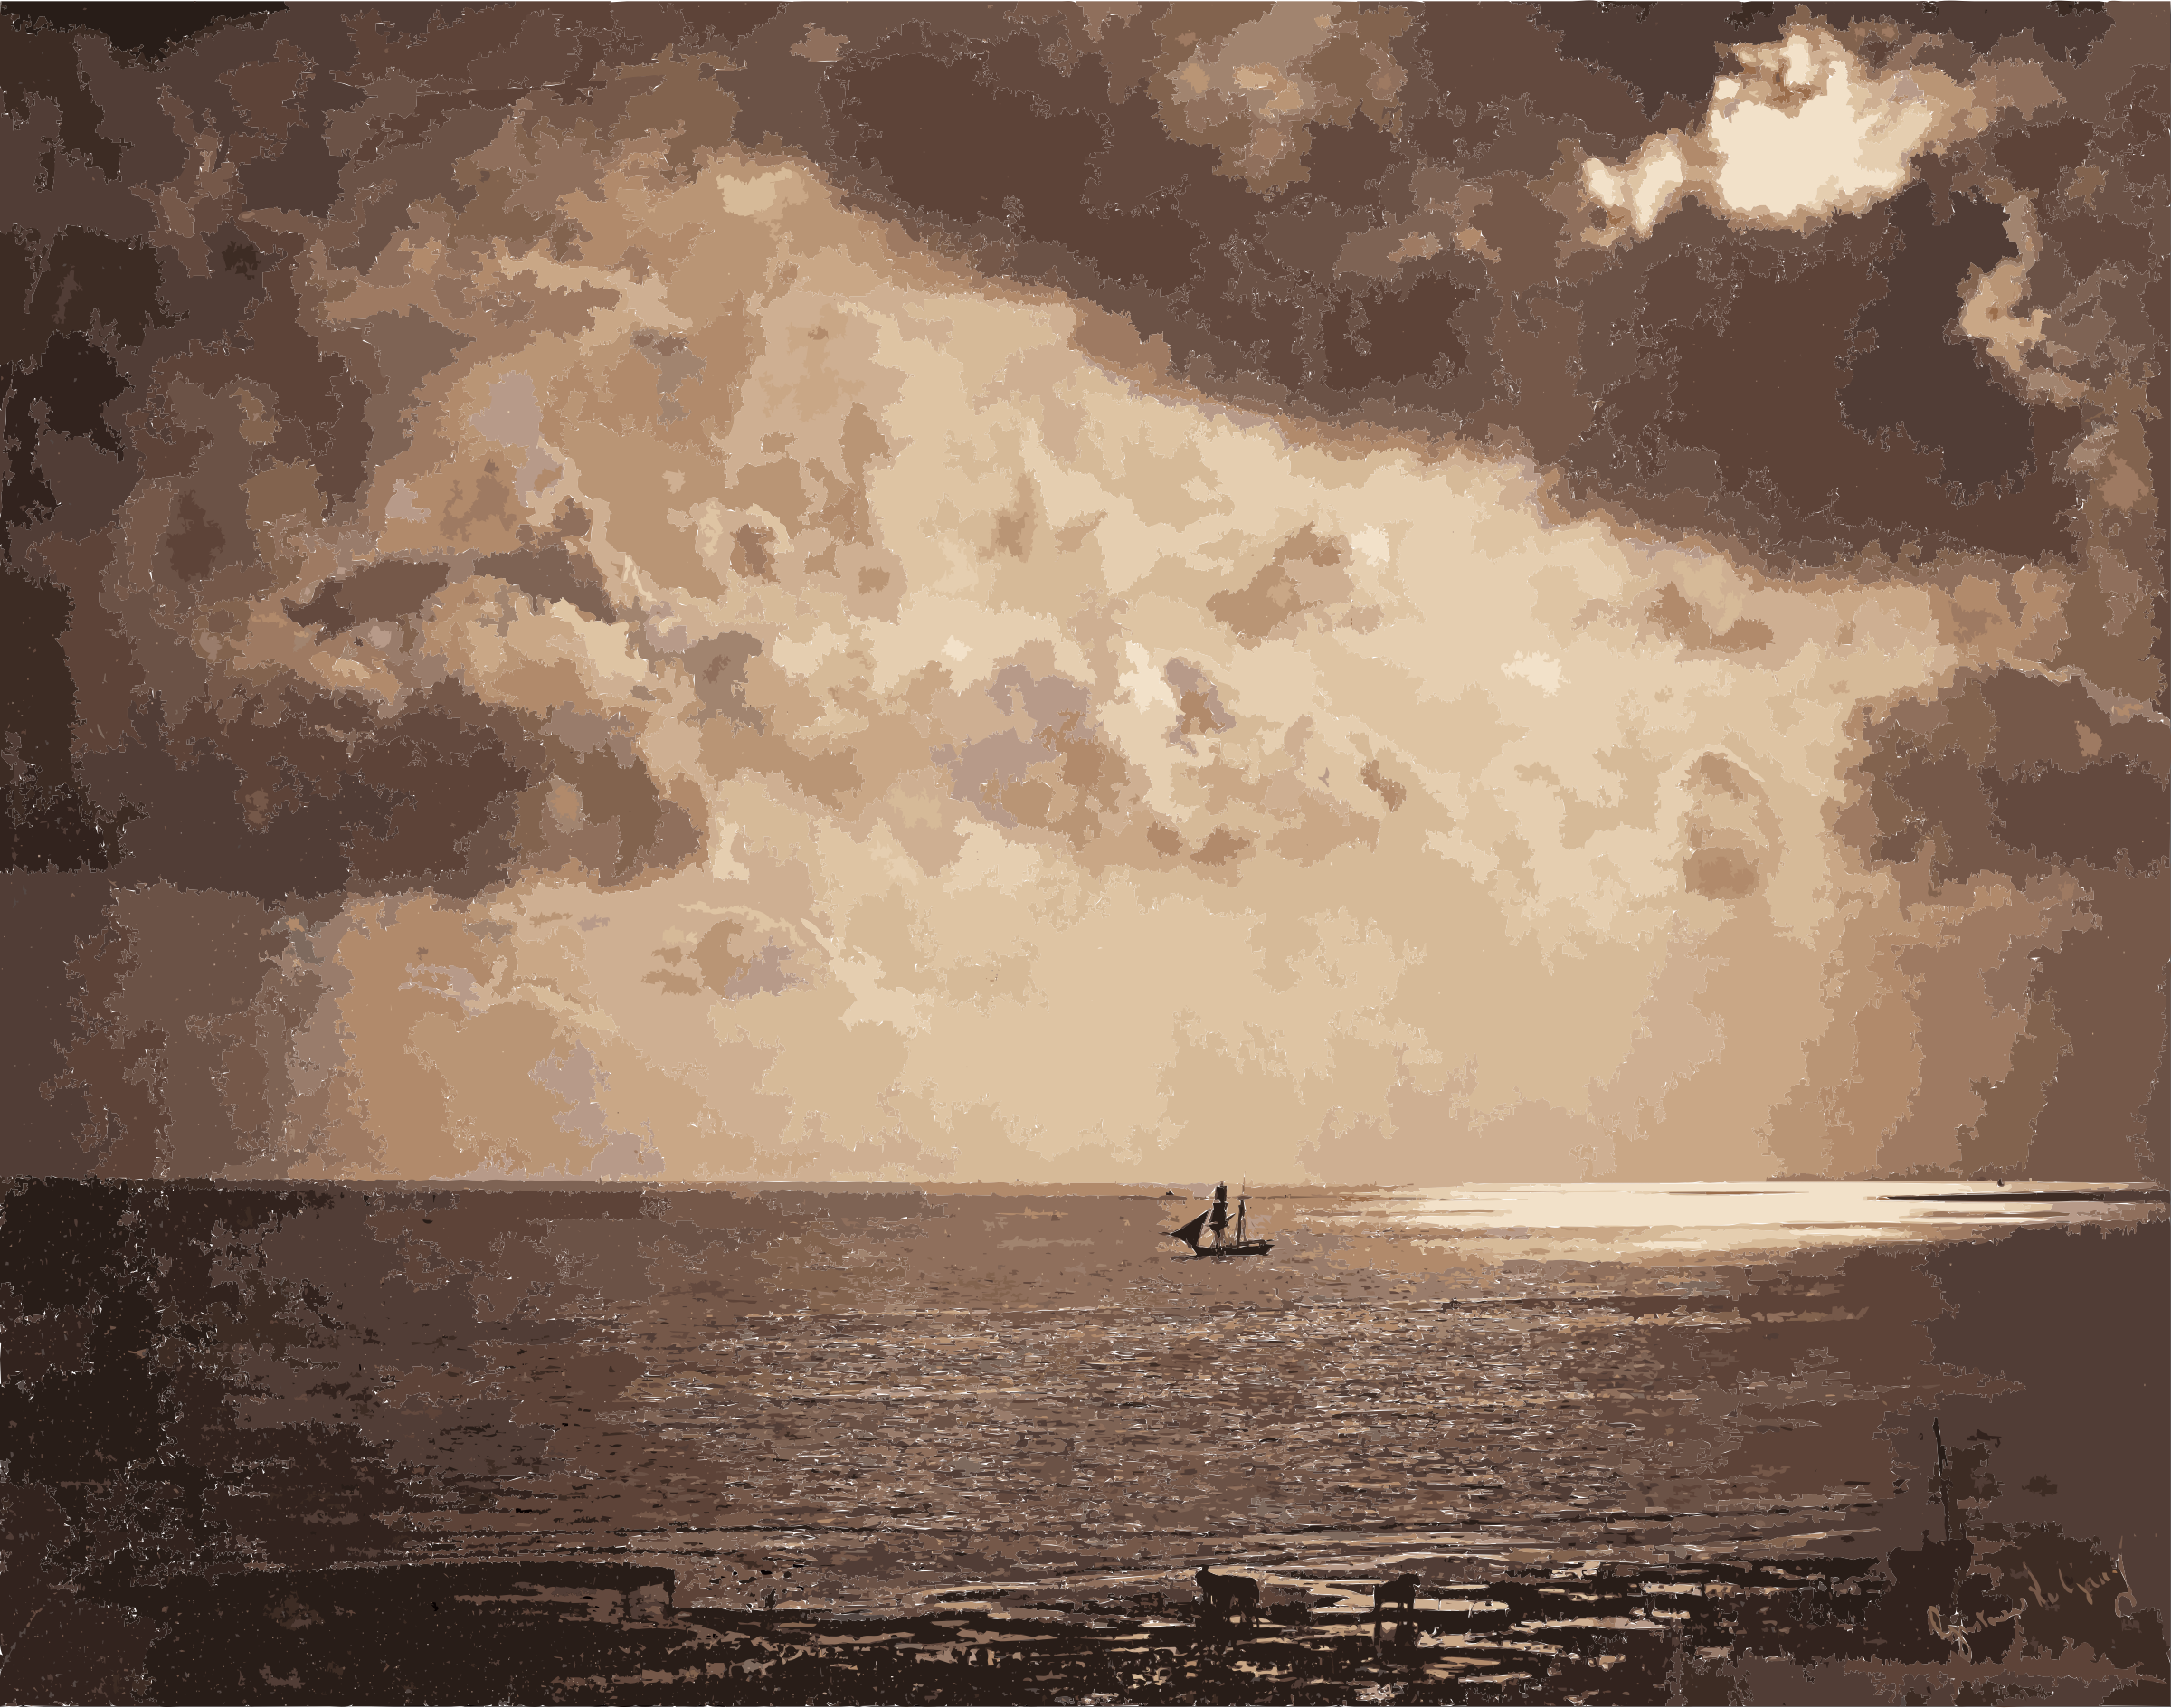 Gustave Le Gray - Brig upon the Water - Google Art Project by 5n9sst+earkddiows40g